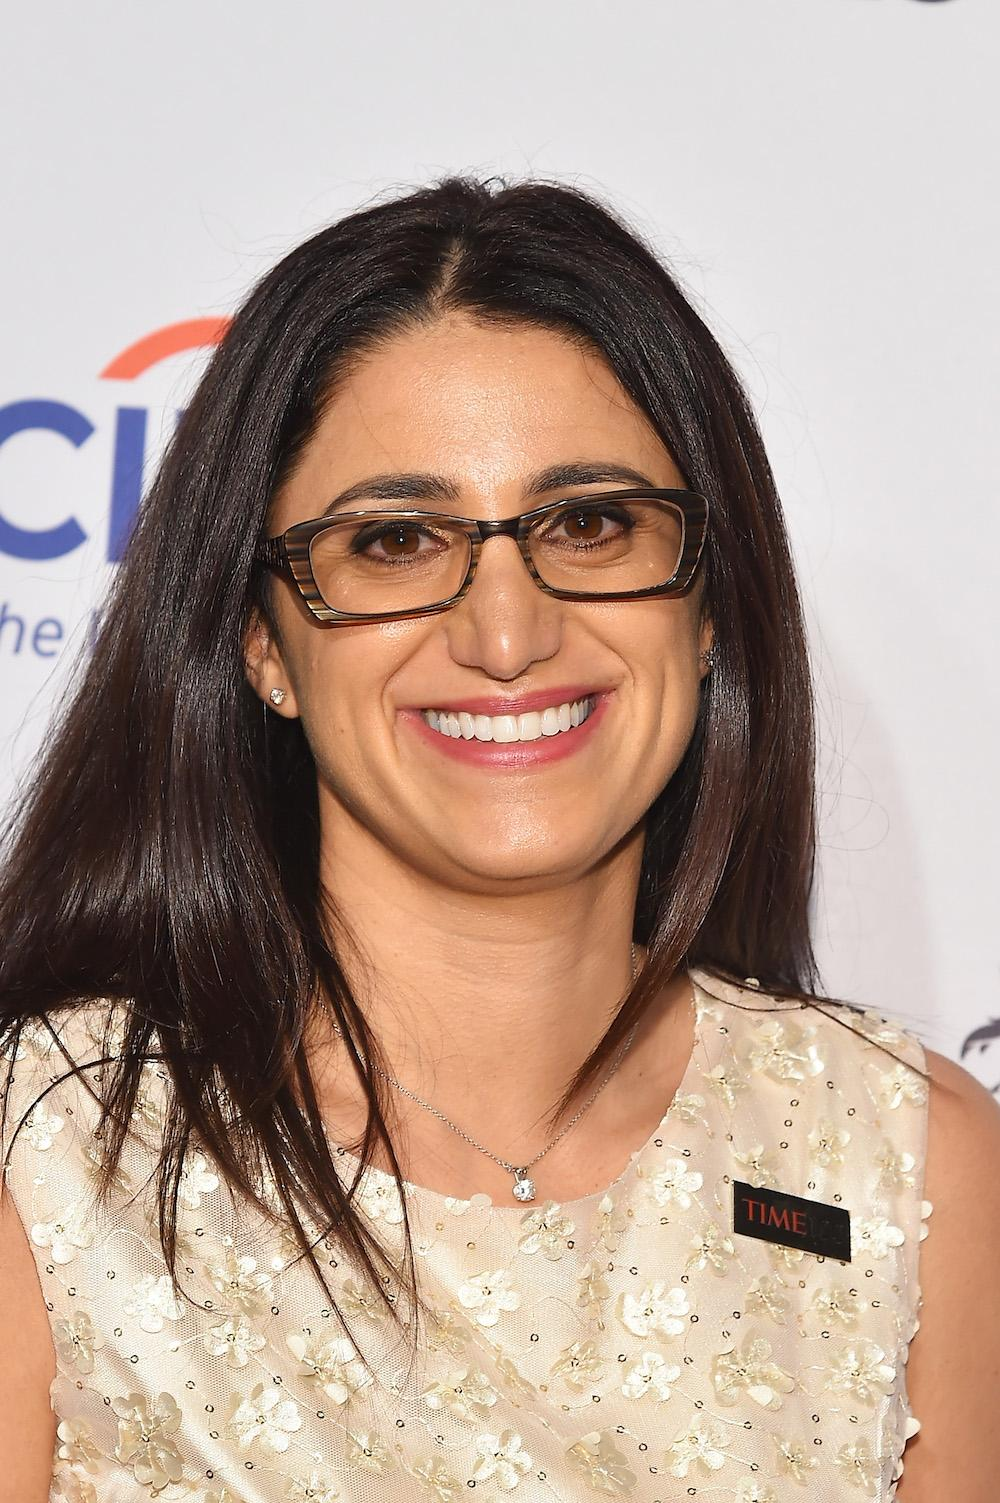 Doctor Mona Hanna-Attisha attends 2016 Time 100 Gala, Time's Most Influential People In The World at Jazz At Lincoln Center at the Times Warner Center on April 26, 2016 in New York City. (Photo by Ben Gabbe/Getty Images for Time)